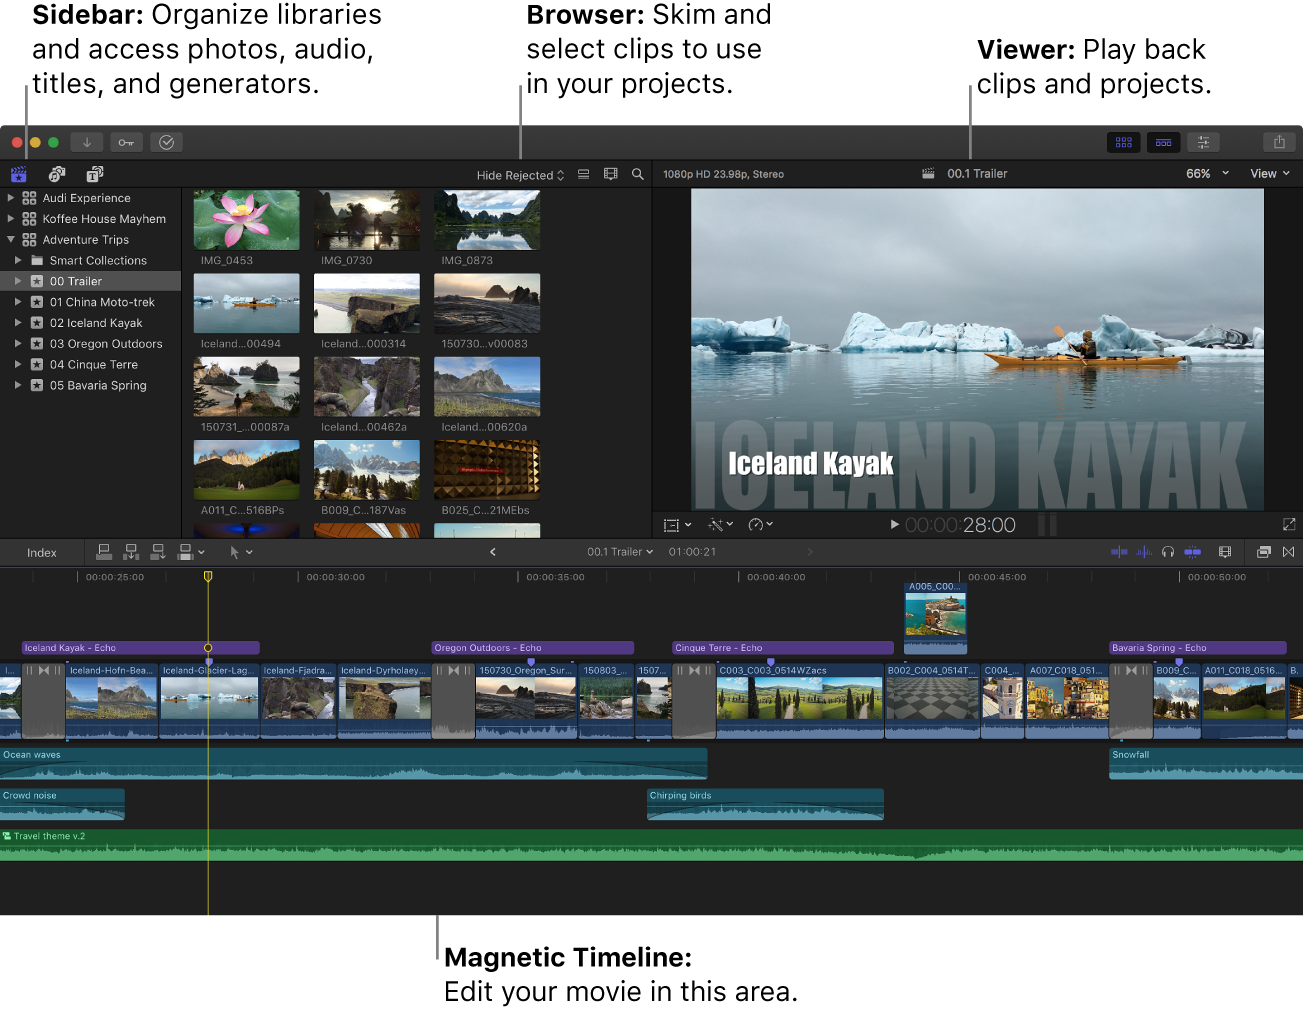 The FinalCutPro window showing the Libraries sidebar, the browser, the viewer, and the timeline